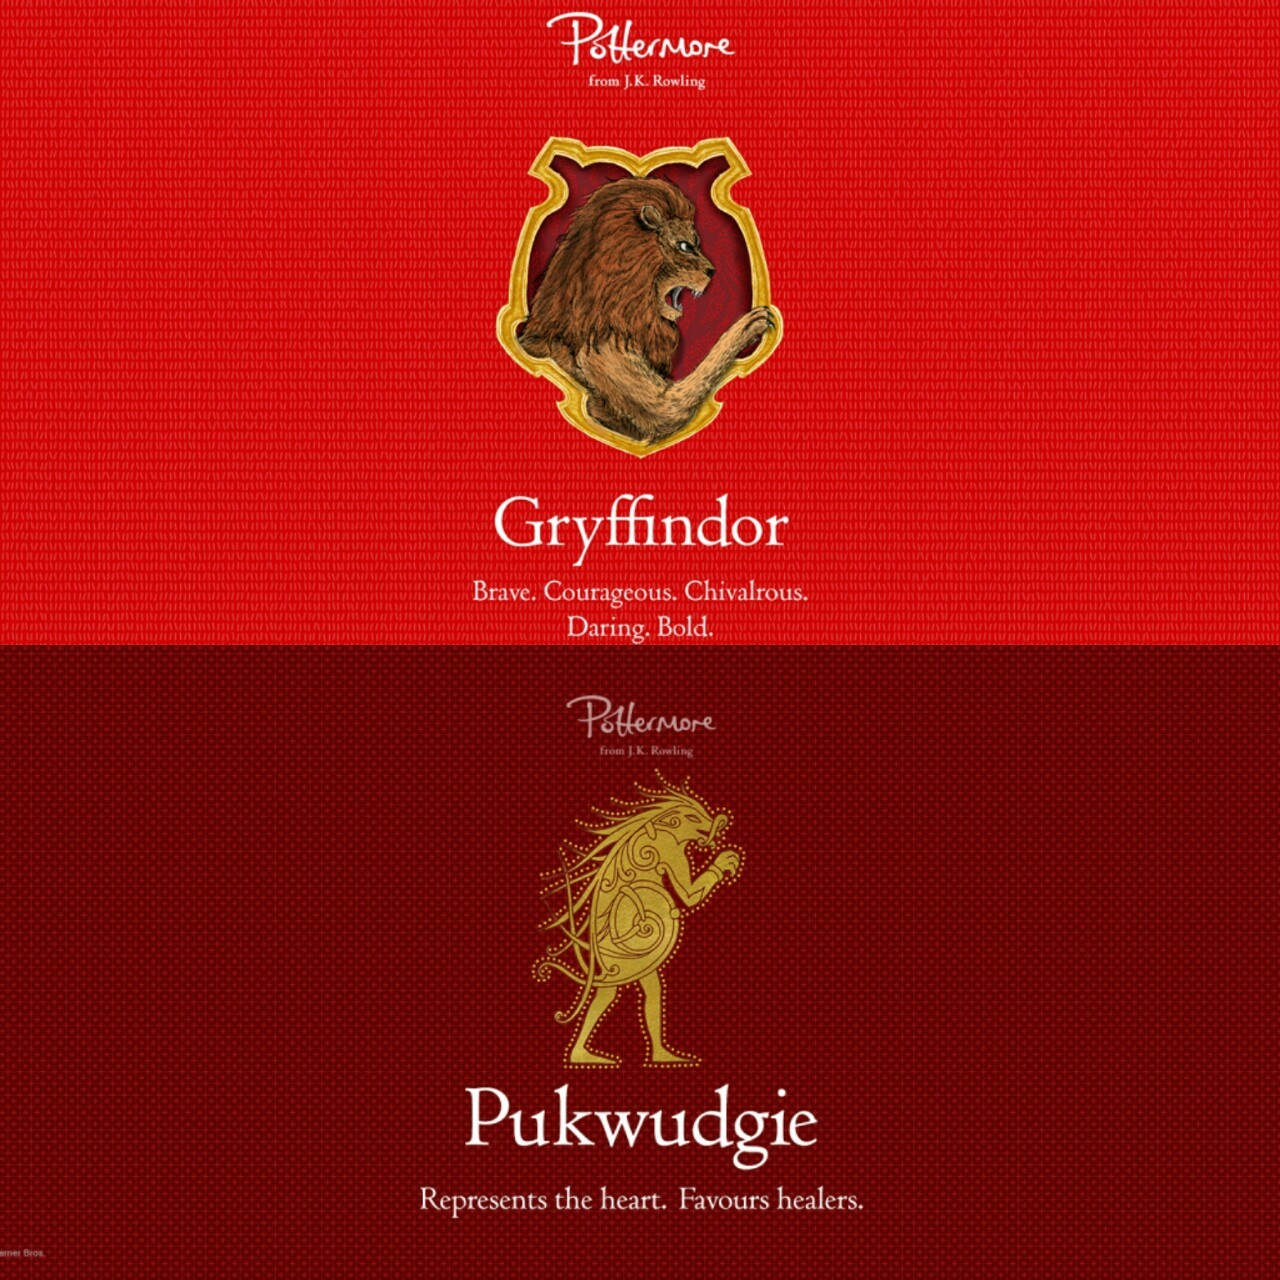 Dark Souls 3 Wallpaper Quote Gryffindor Pukwudgie Pride You Know When Sometimes You